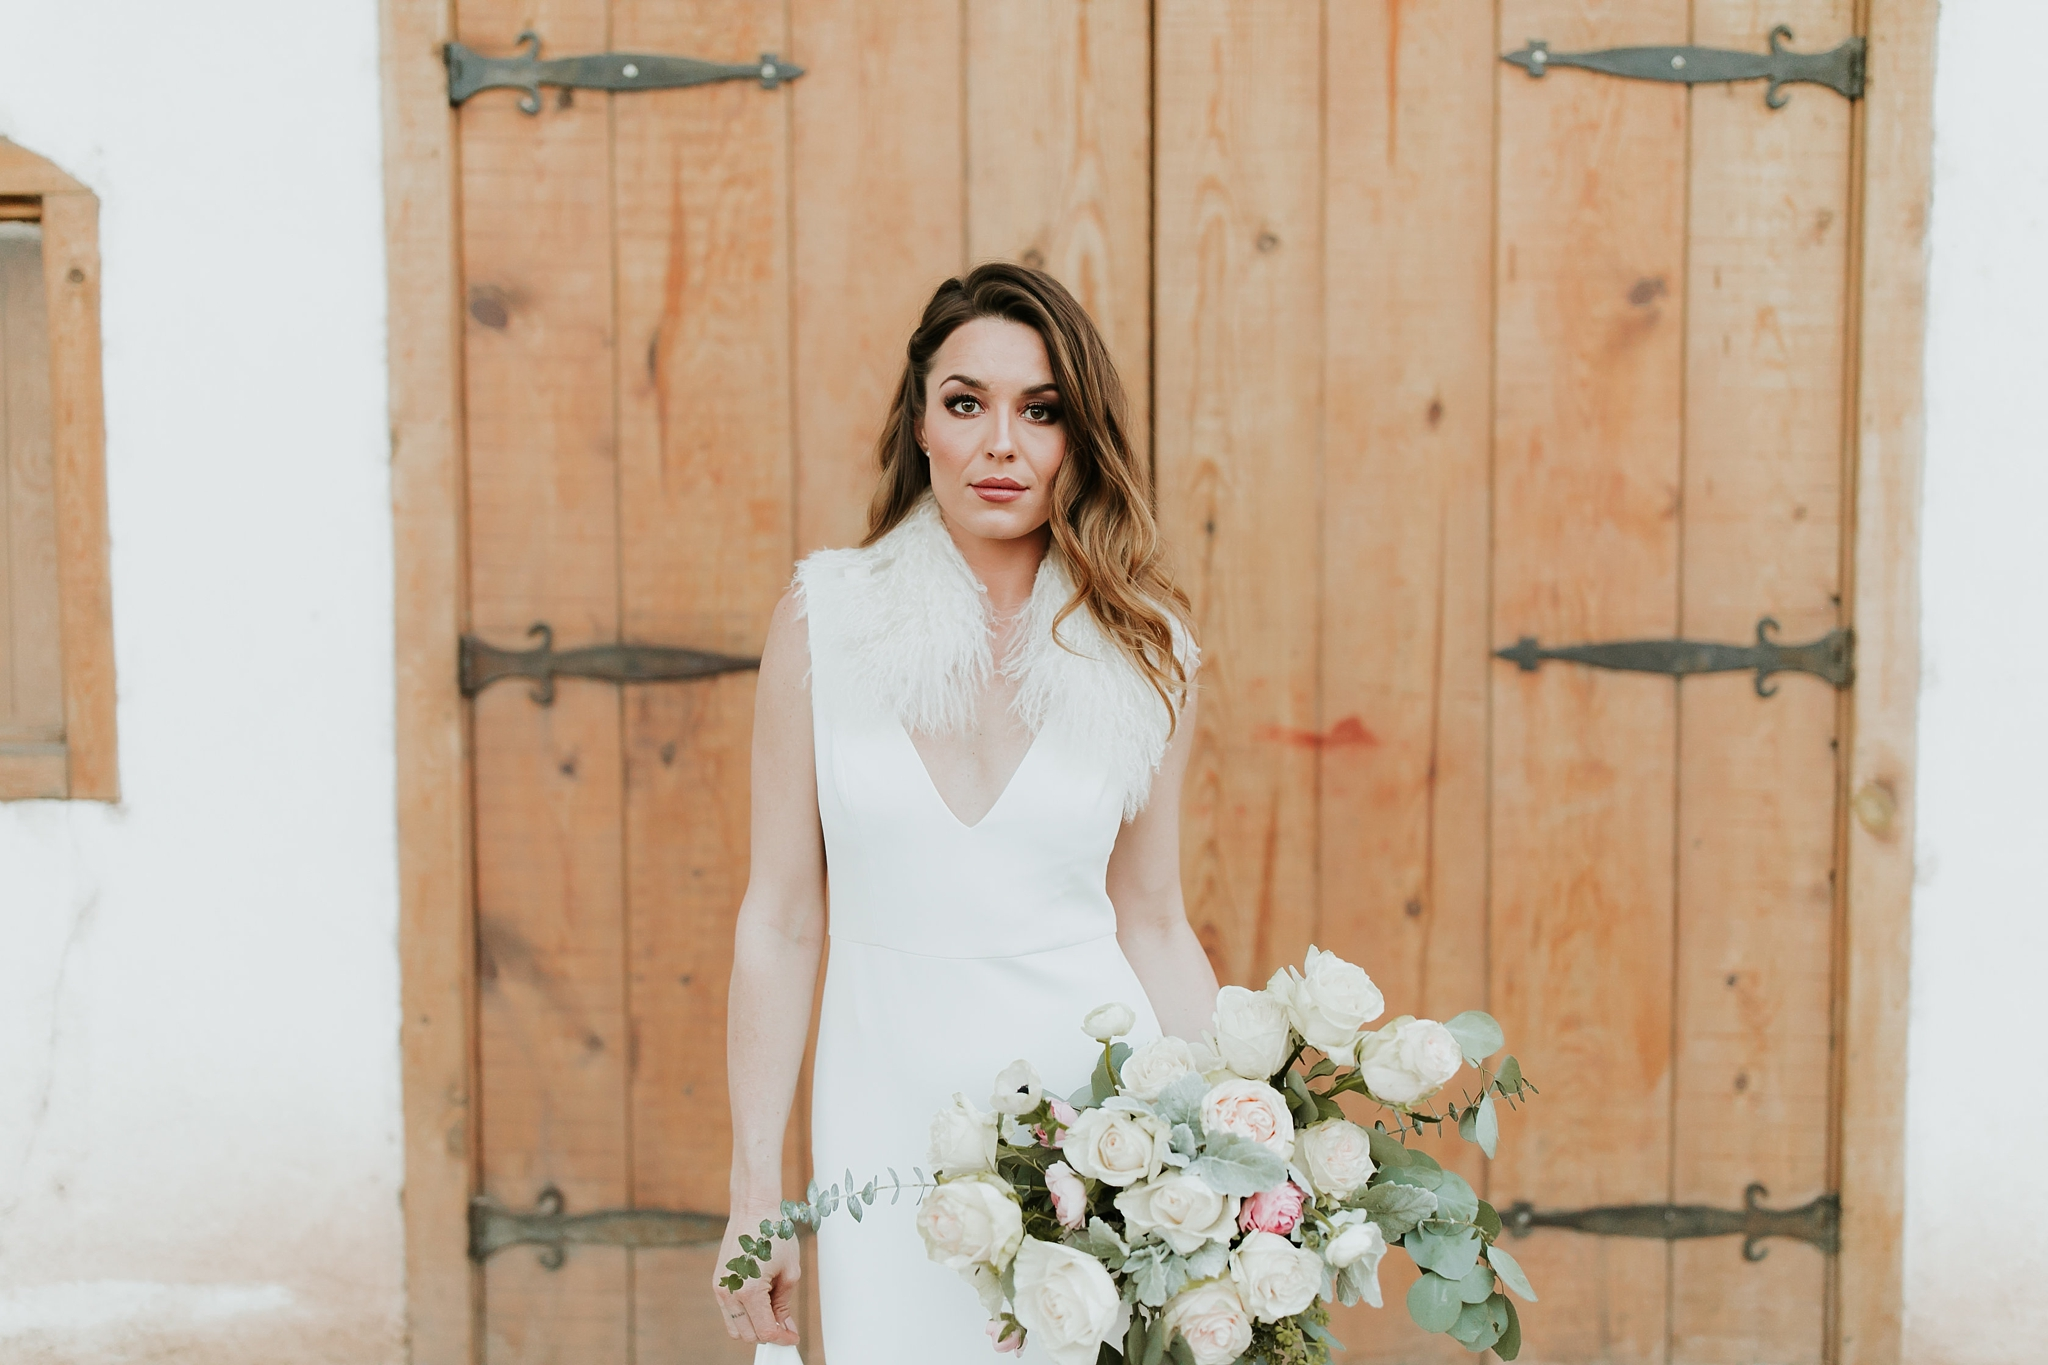 Alicia+lucia+photography+-+albuquerque+wedding+photographer+-+santa+fe+wedding+photography+-+new+mexico+wedding+photographer+-+bridal+shoot+-+styled+bridal+shoot+-+southwest+bride_0016.jpg